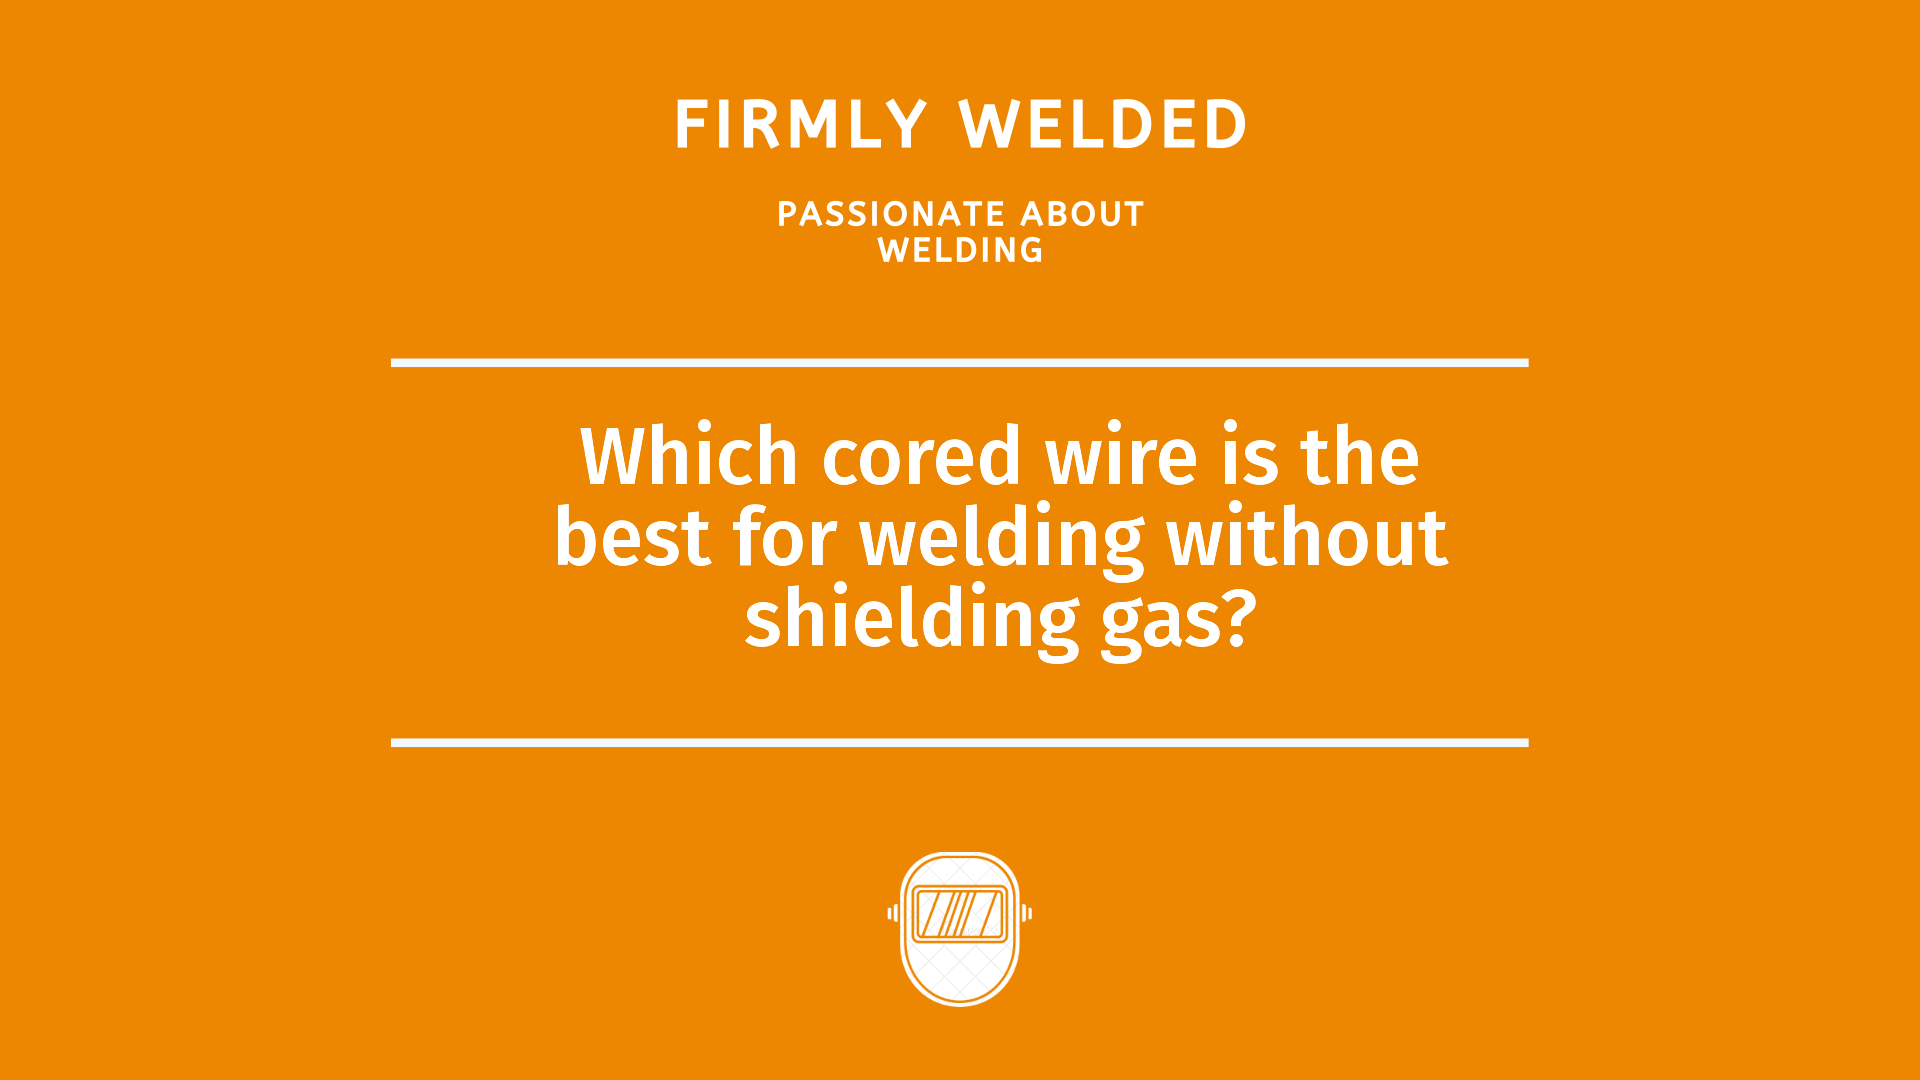 Which cored wire is the best for welding without shielding gas?